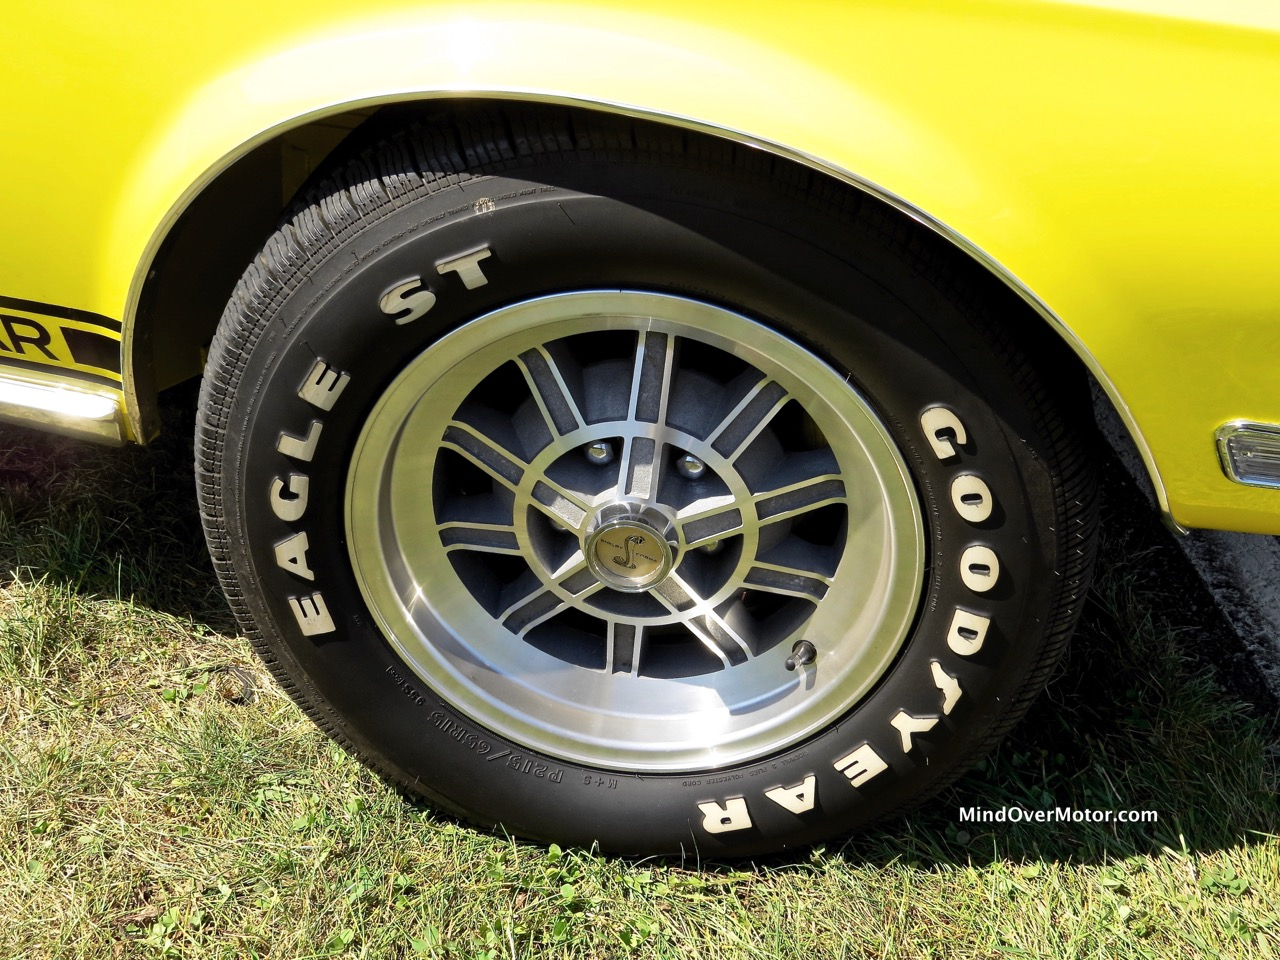 1968 Shelby GT500KR Wheel